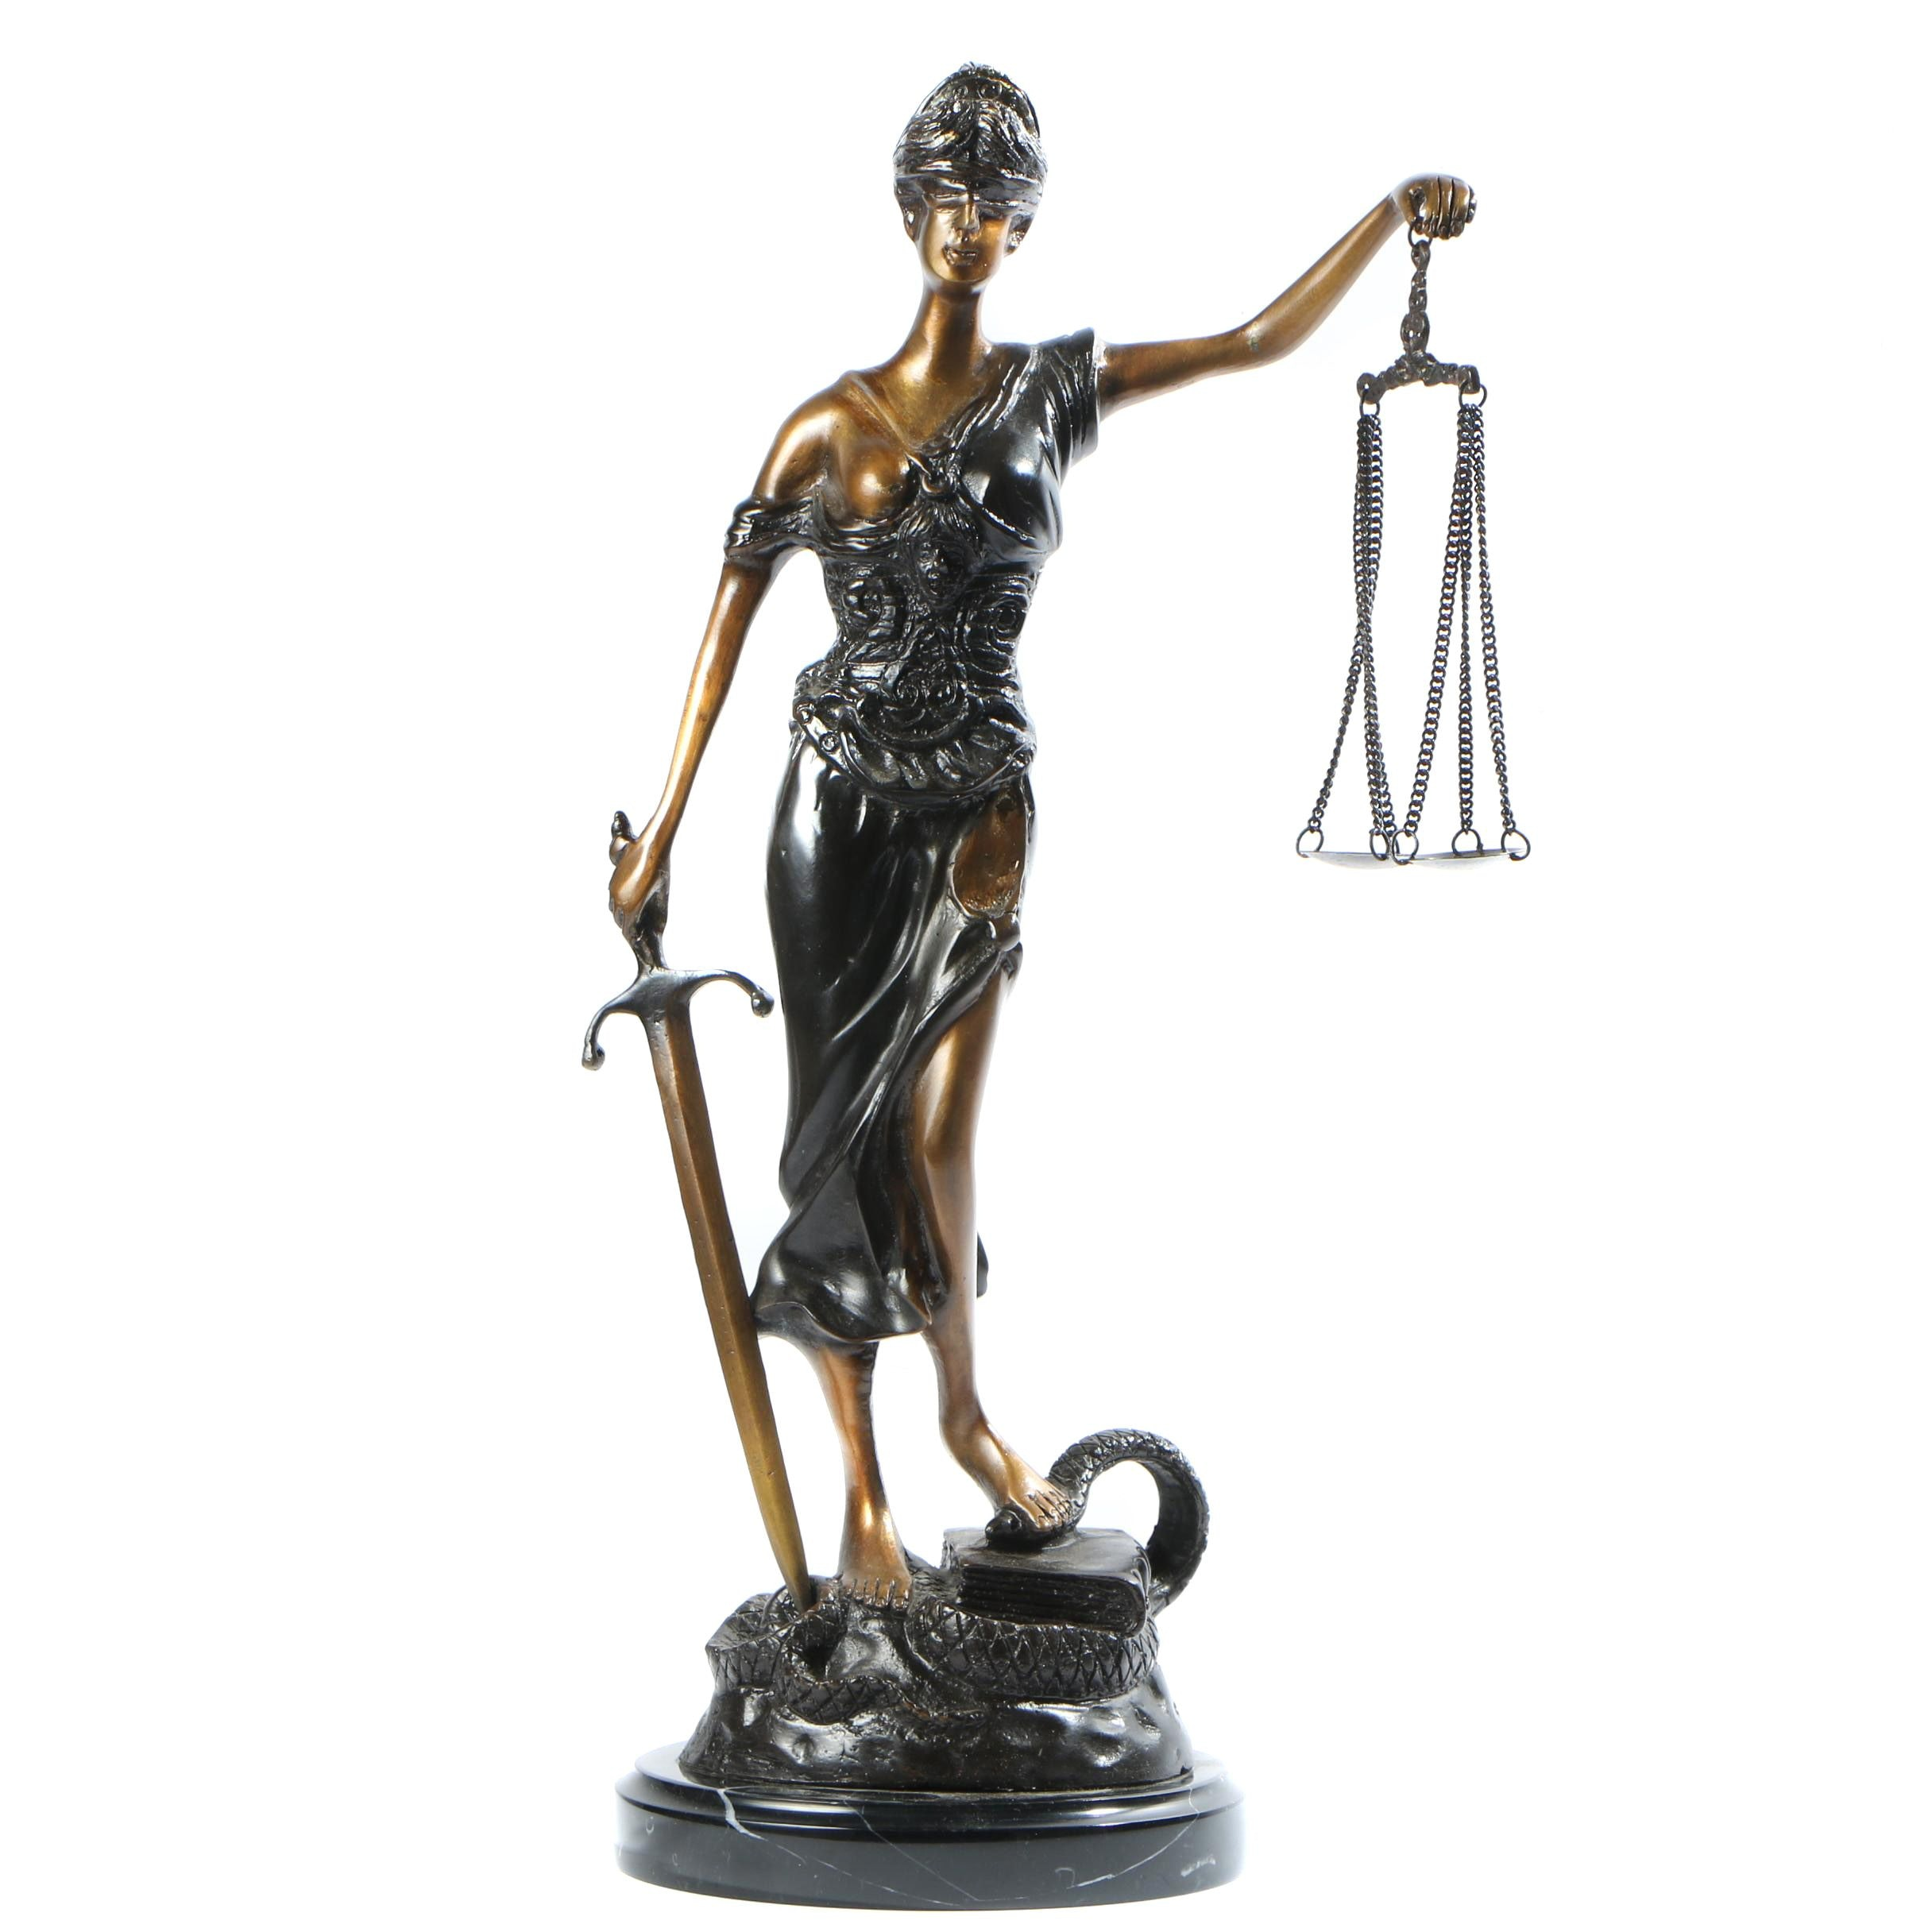 Brass Tone Sculpture of Lady Justice Attributed to Mayer